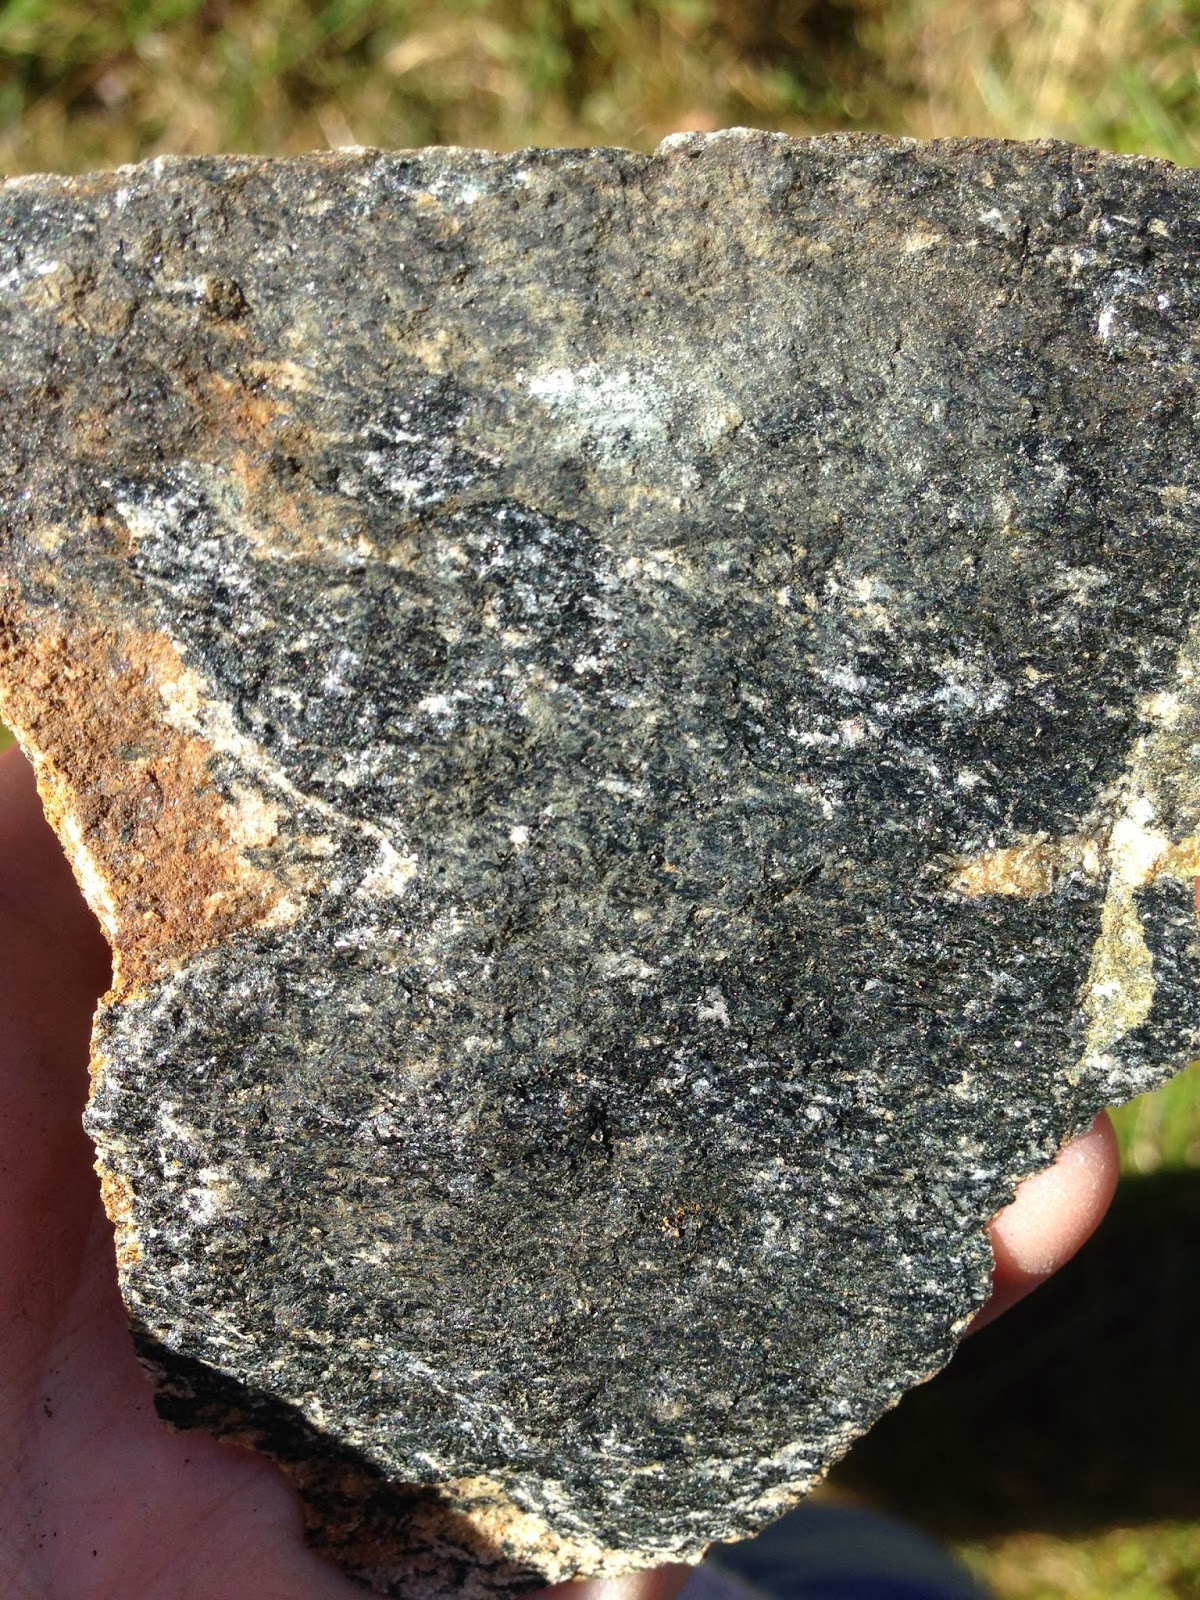 figure 4 1 mafic rock from moretown fm stop 1 note the dark color and the fact that the grains are weakly aligned